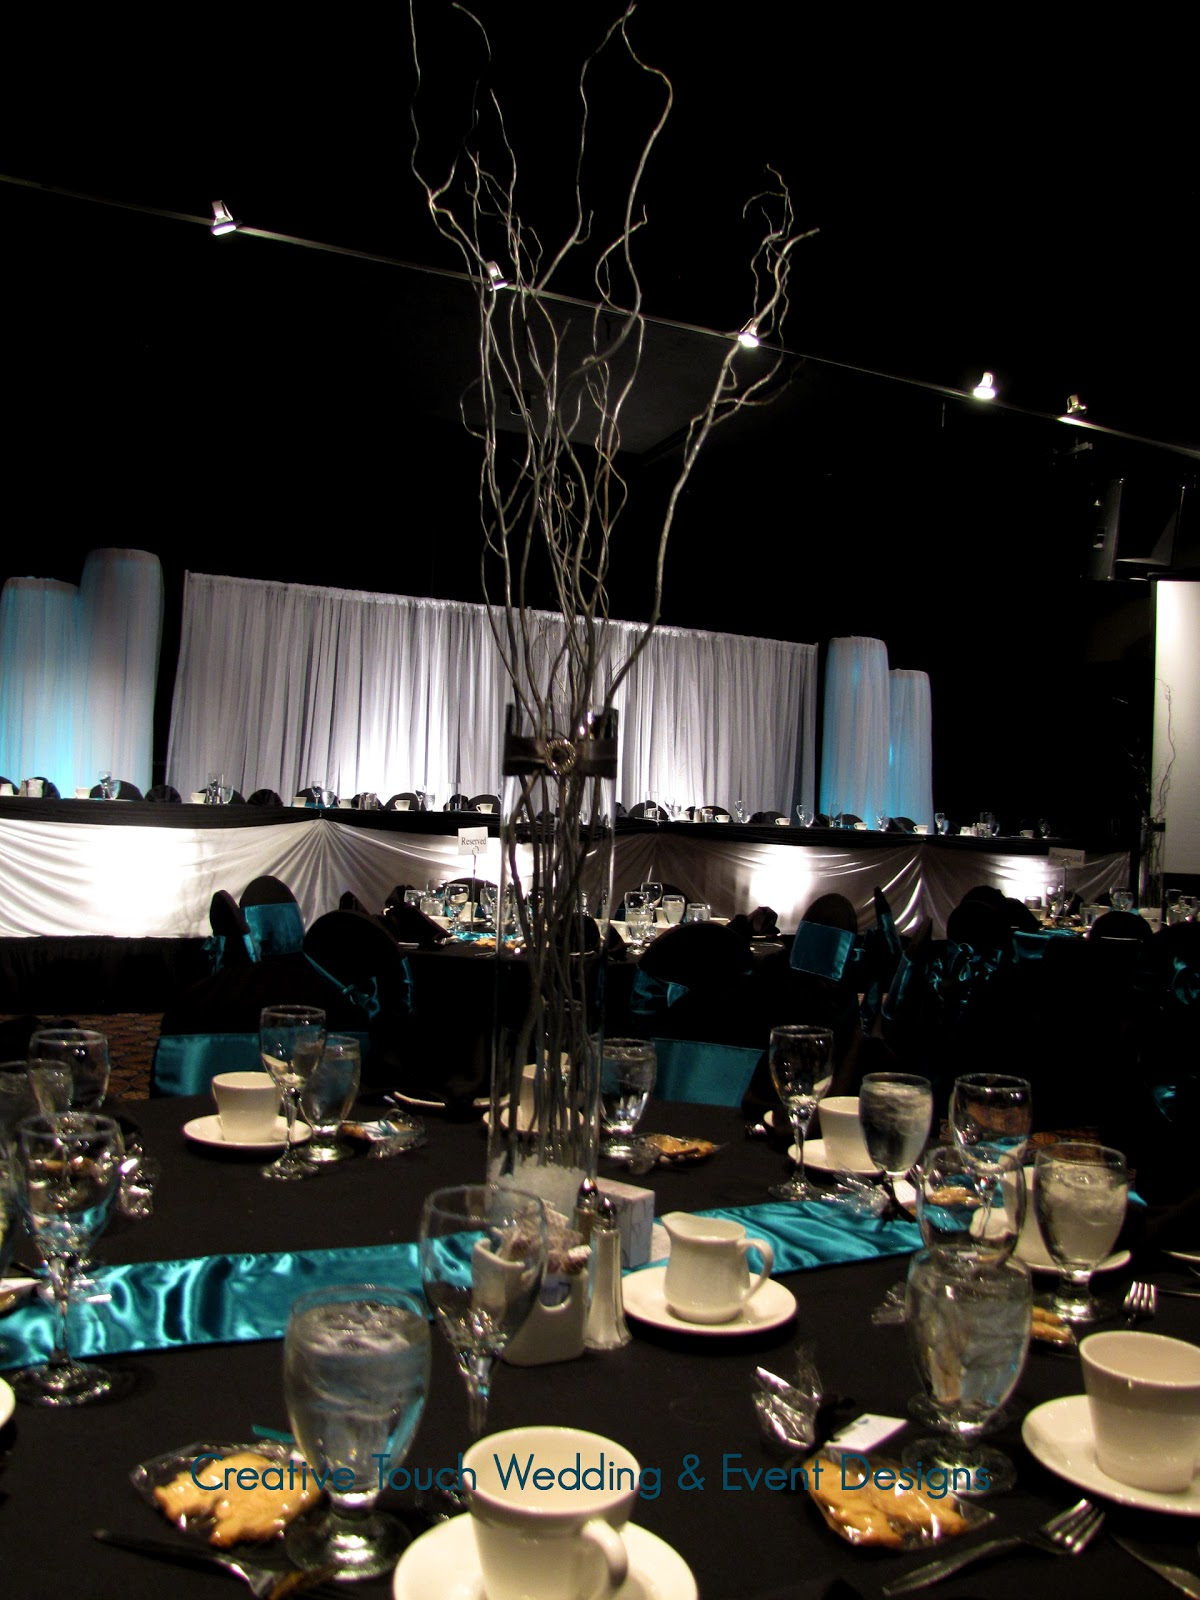 ... uplights teal runners black chair covers with teal satin sashes head